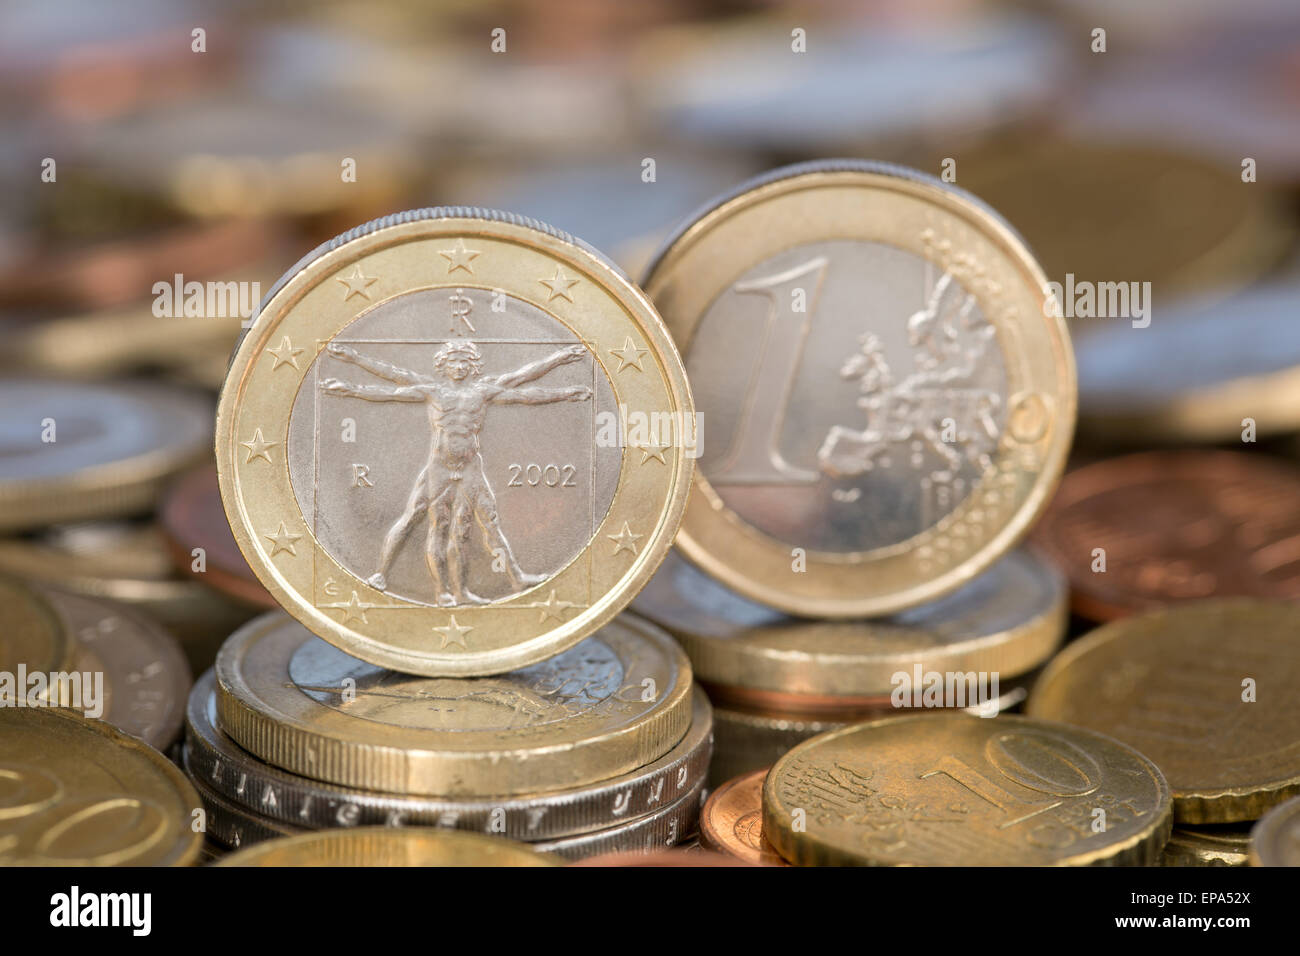 Cash Pool Italien Euro Krise Stock Photos Euro Krise Stock Images Alamy